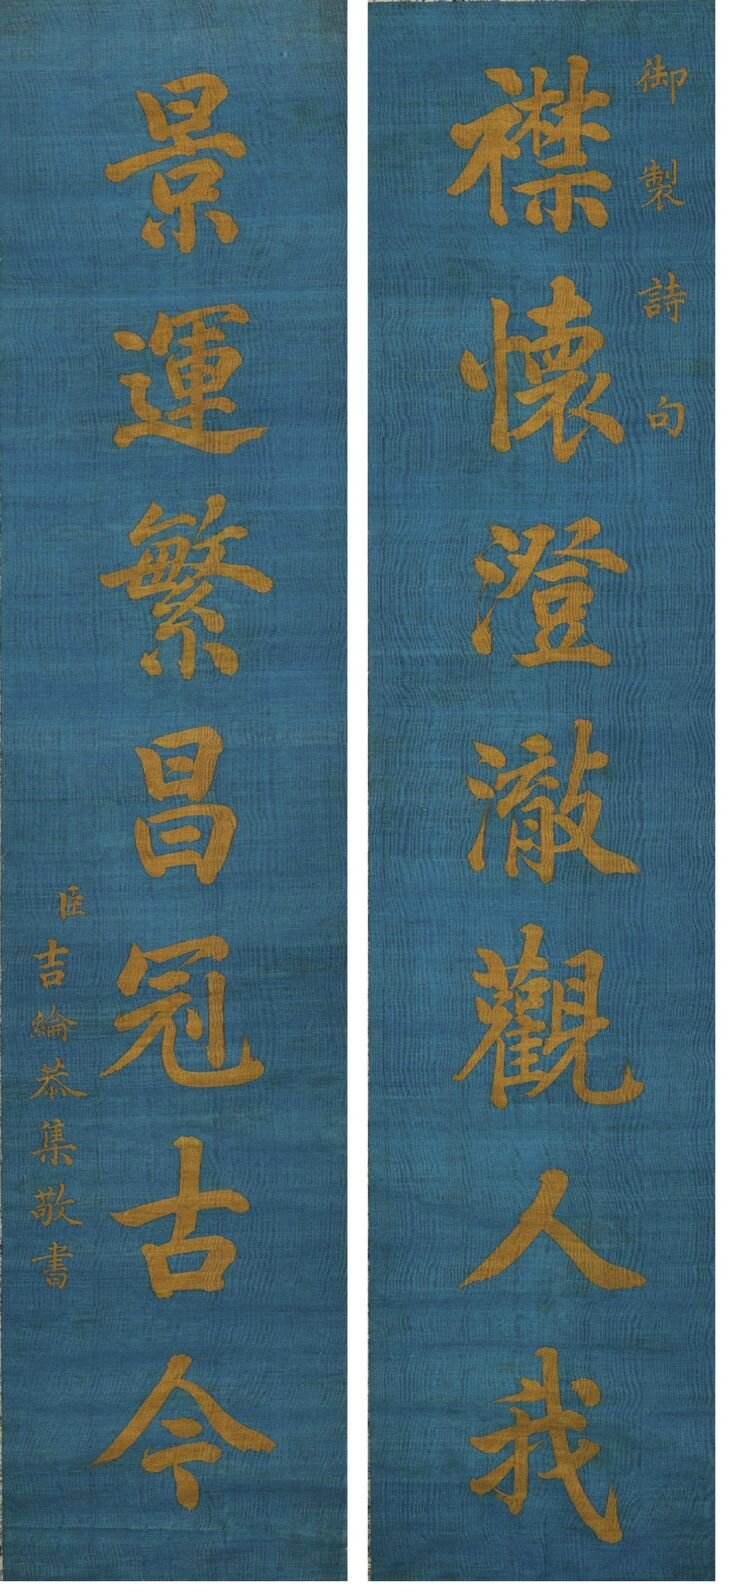 A pair of Imperial kesi poems by Ji Lun, Qing dynasty, Jiaqing period